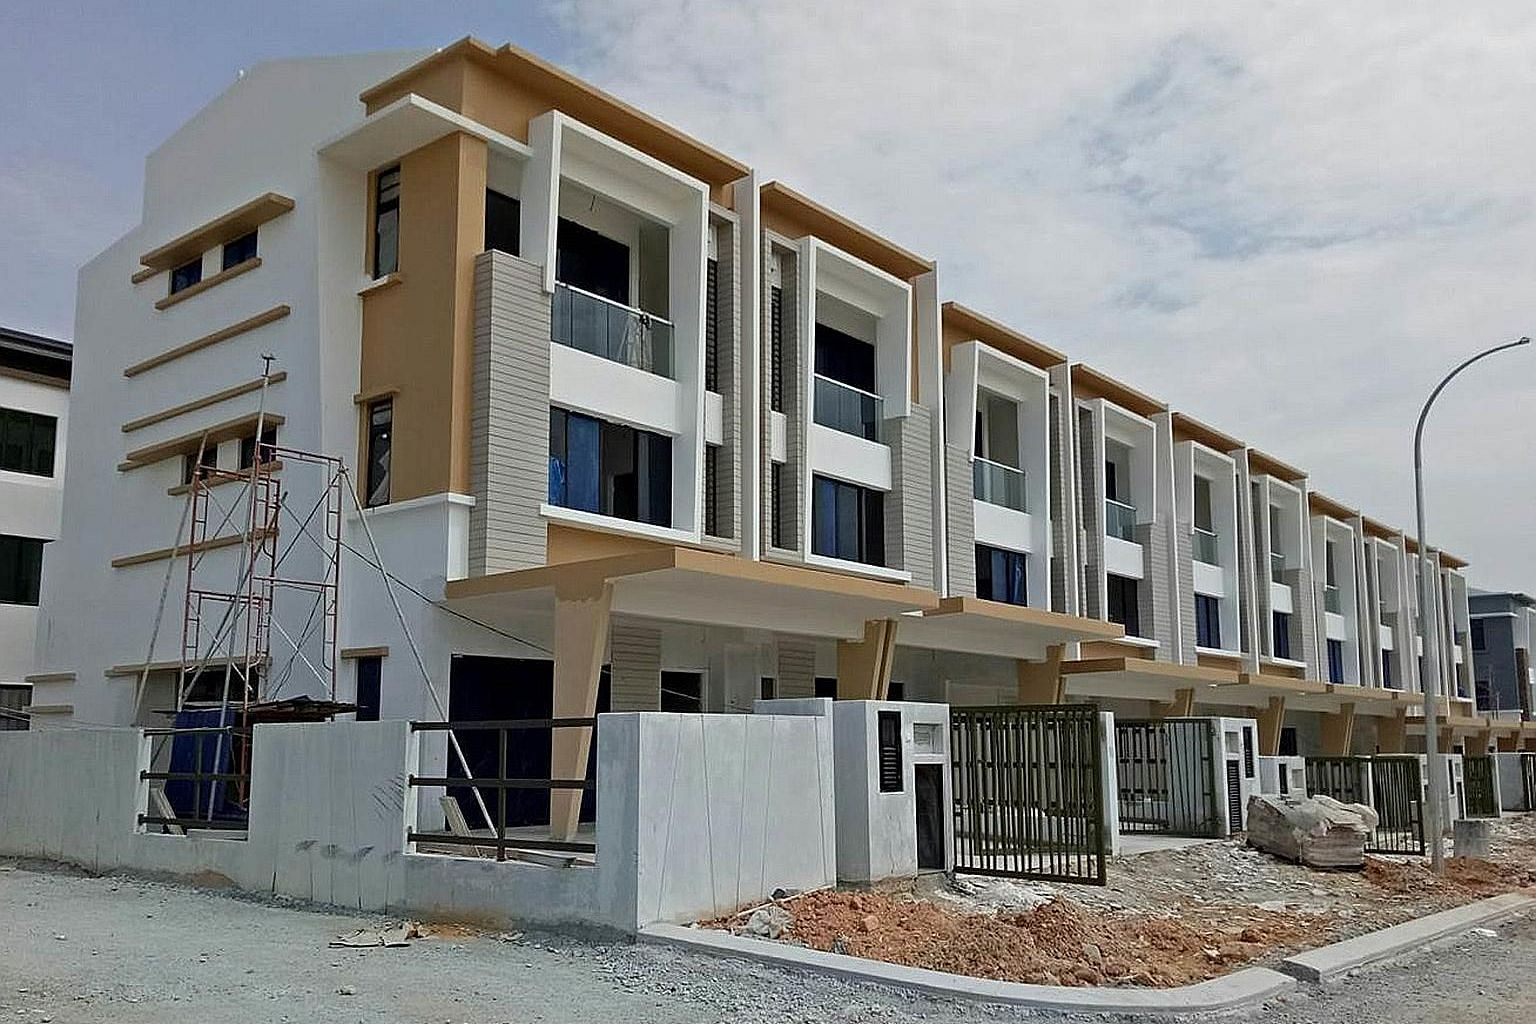 New terrace houses in a Shah Alam development. They are priced from RM891,000 (S$290,000) each.